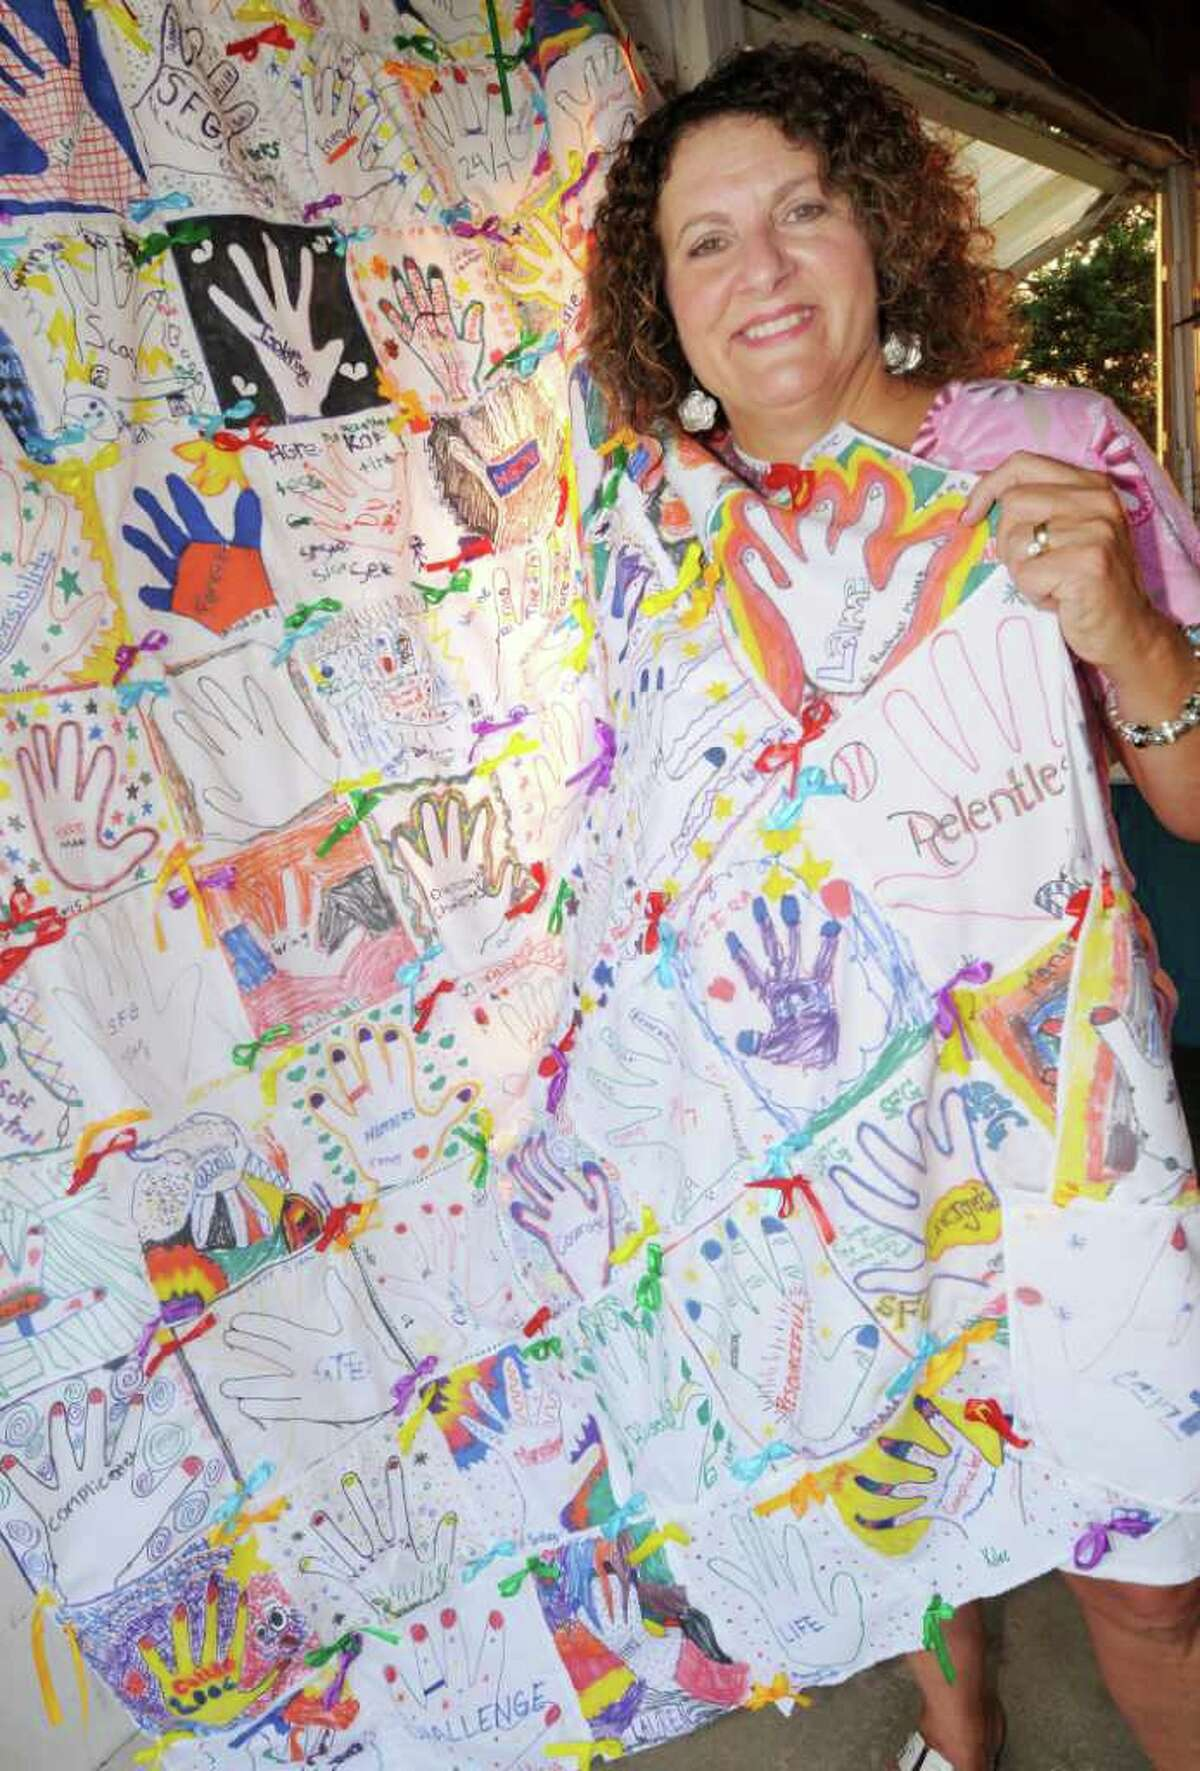 """Holding a quilt of hand prints made by members of the """"Sugar Free Gang"""", is Joanne DeNovio. (Luanne M. Ferris / Times Union )"""